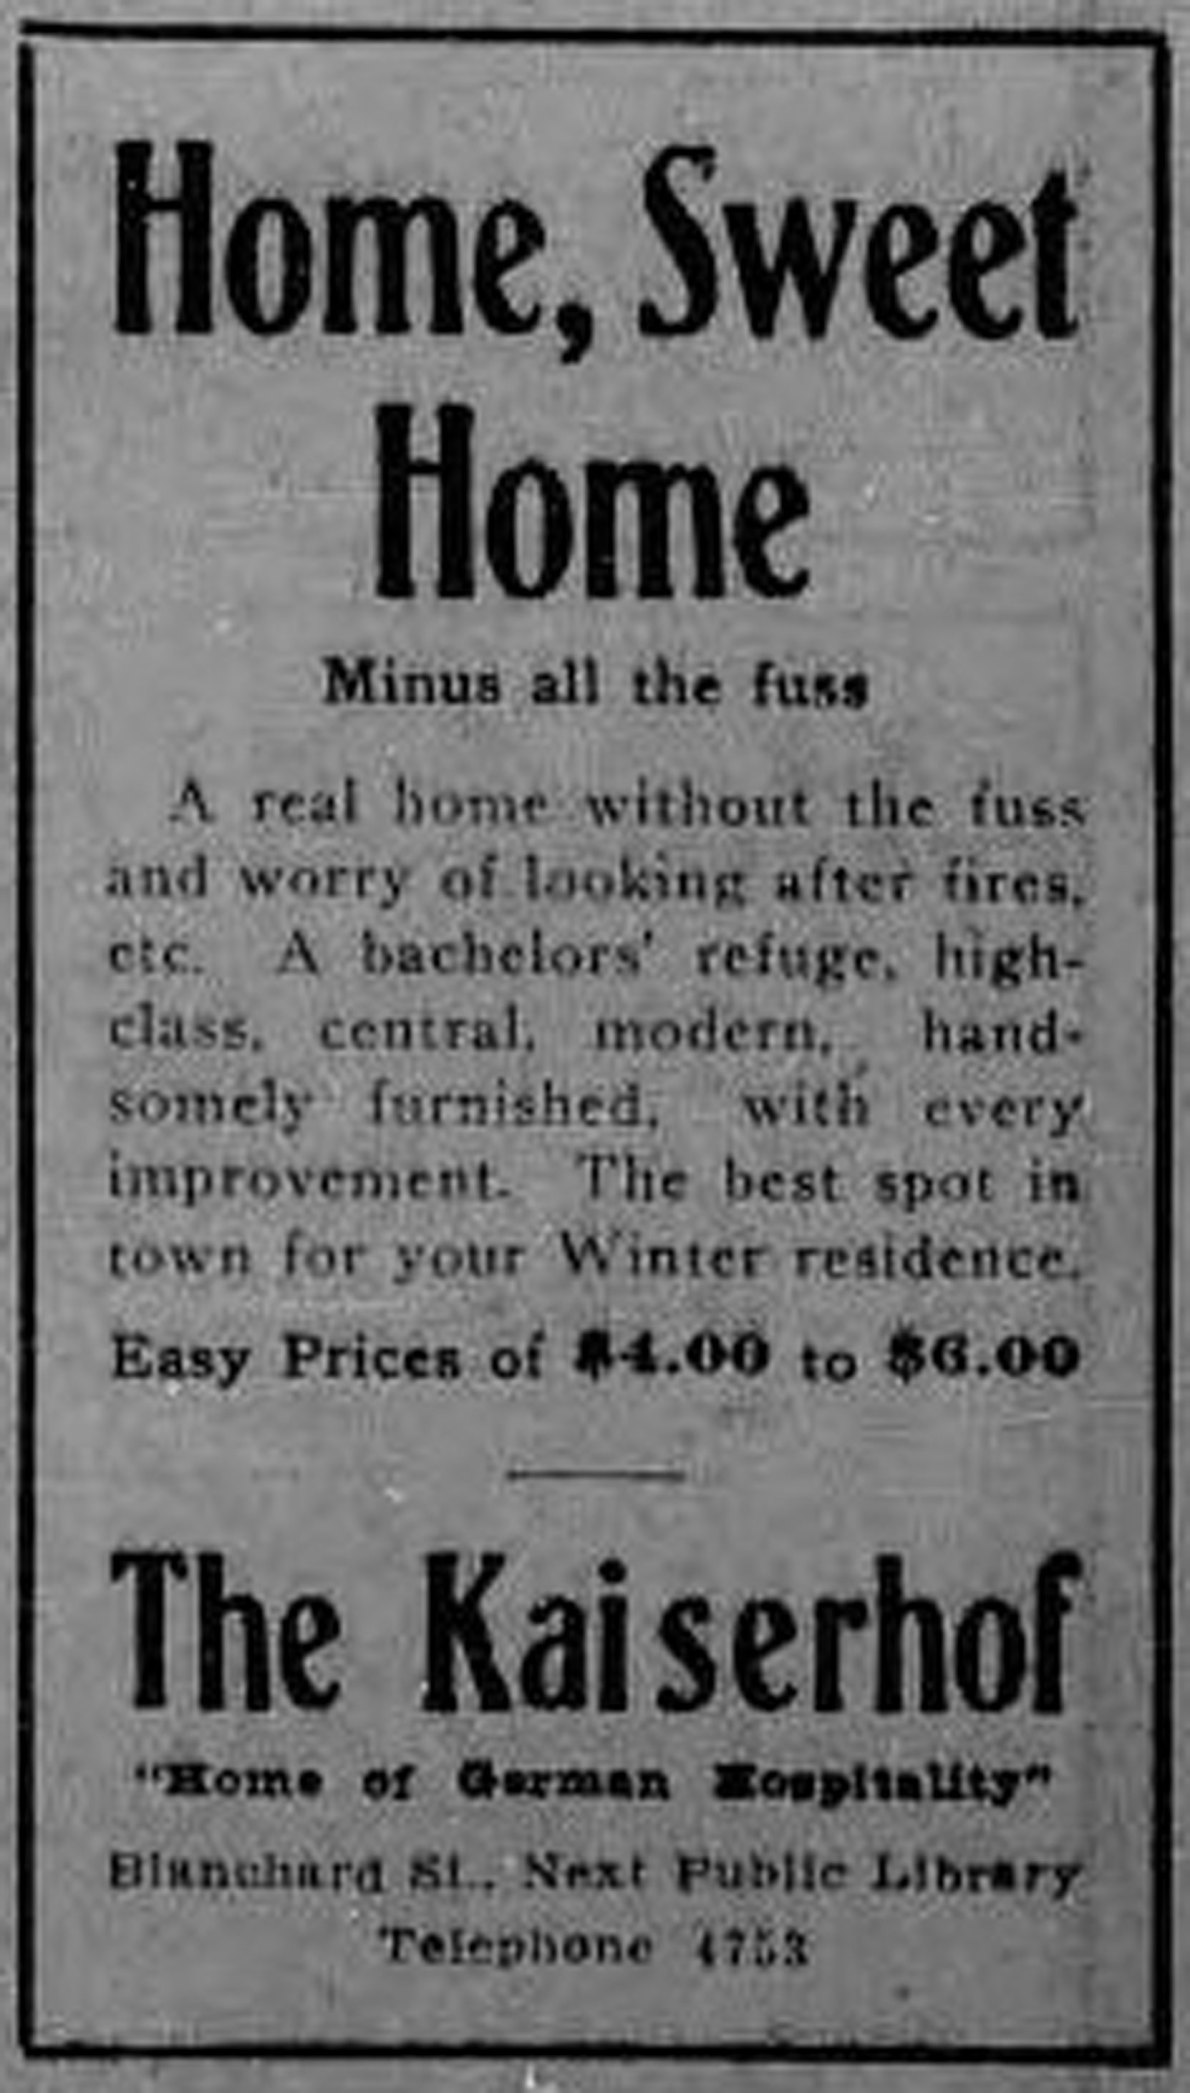 """1913 advertisement for The Kaiserhof, 1320-1322 Blanshard Street. Notice the """"bachelors' refuge"""", indicating the market The Kaiserhof was trying to attract. (Victoria Online Sightseeing Tours collection)"""